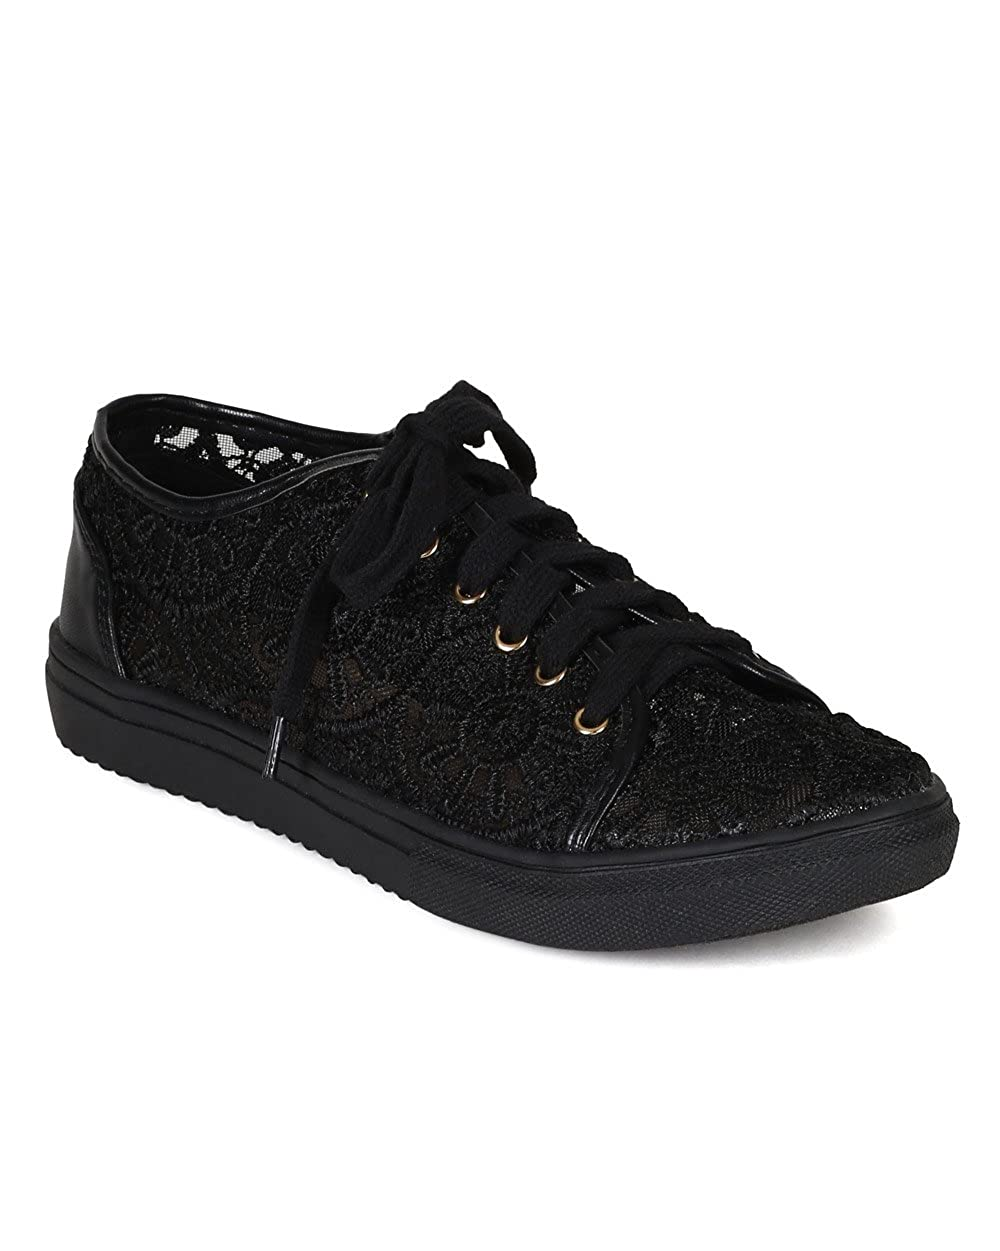 Nature Breeze Lego-01 Womens Lace Round Toe Lace Up Flat Sneakers